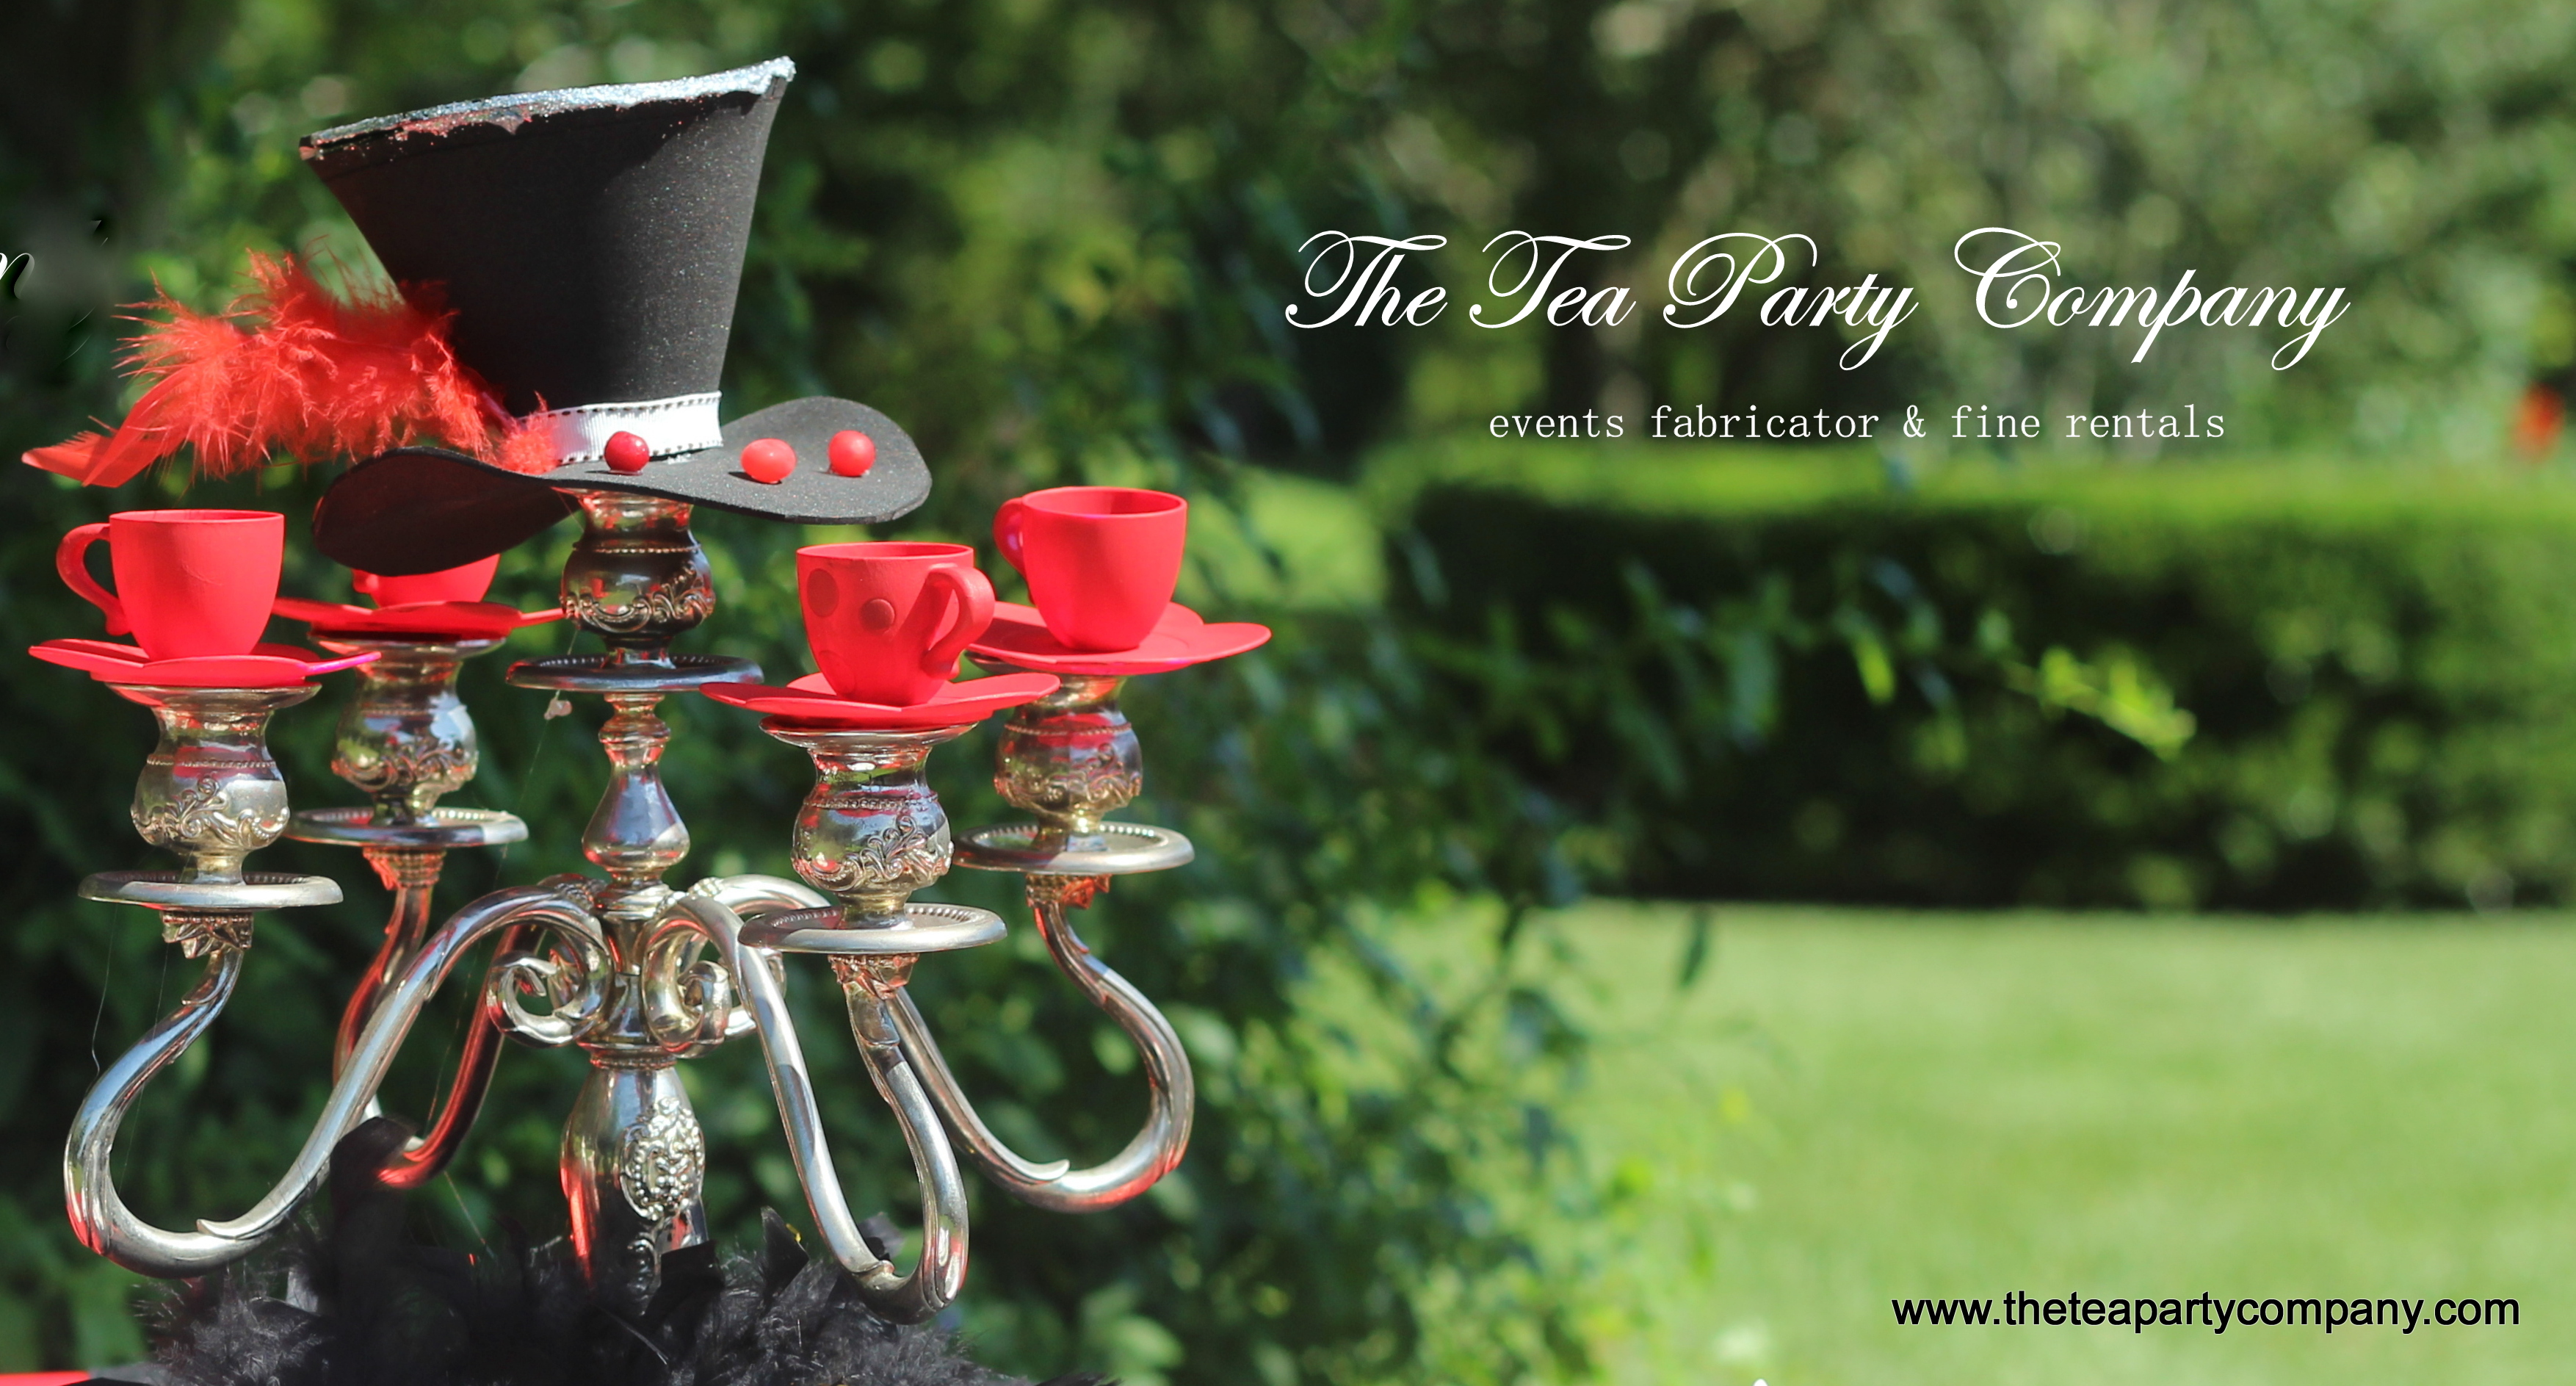 5 arCandelabra The Tea Party Company